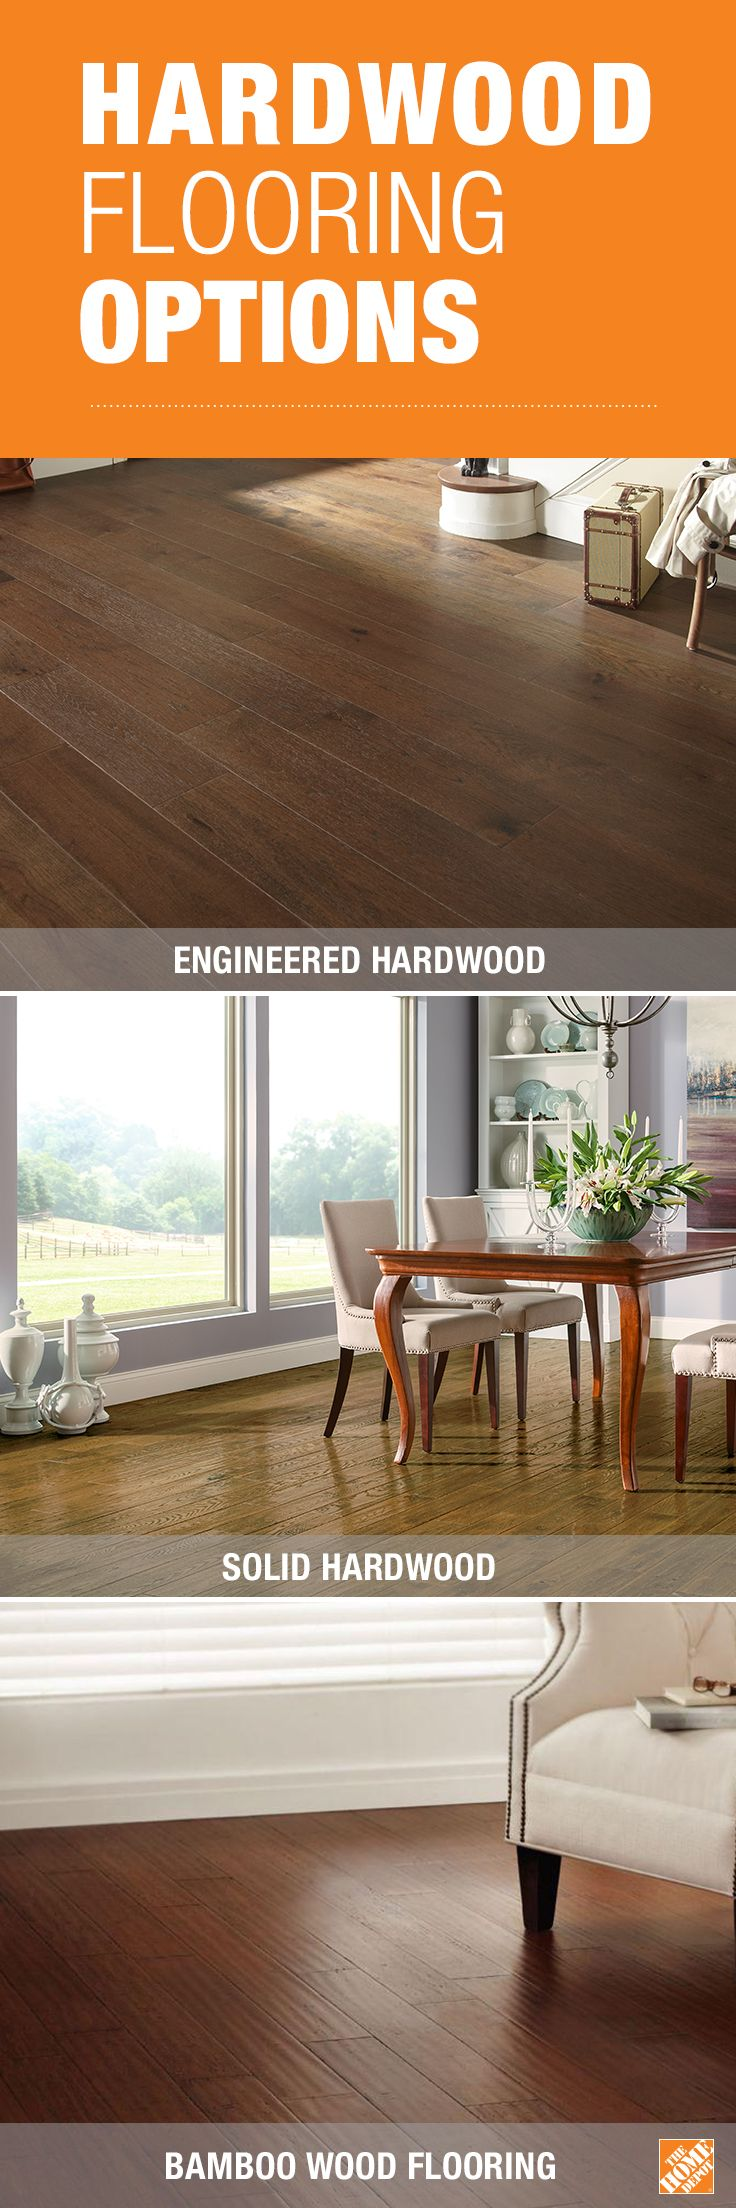 Find a wide selection of wood flooring at The Home Depot, including the latest in engineered hardwood, classic hardwood and on-trend bamboo choices. Click through to explore all our wood flooring options.